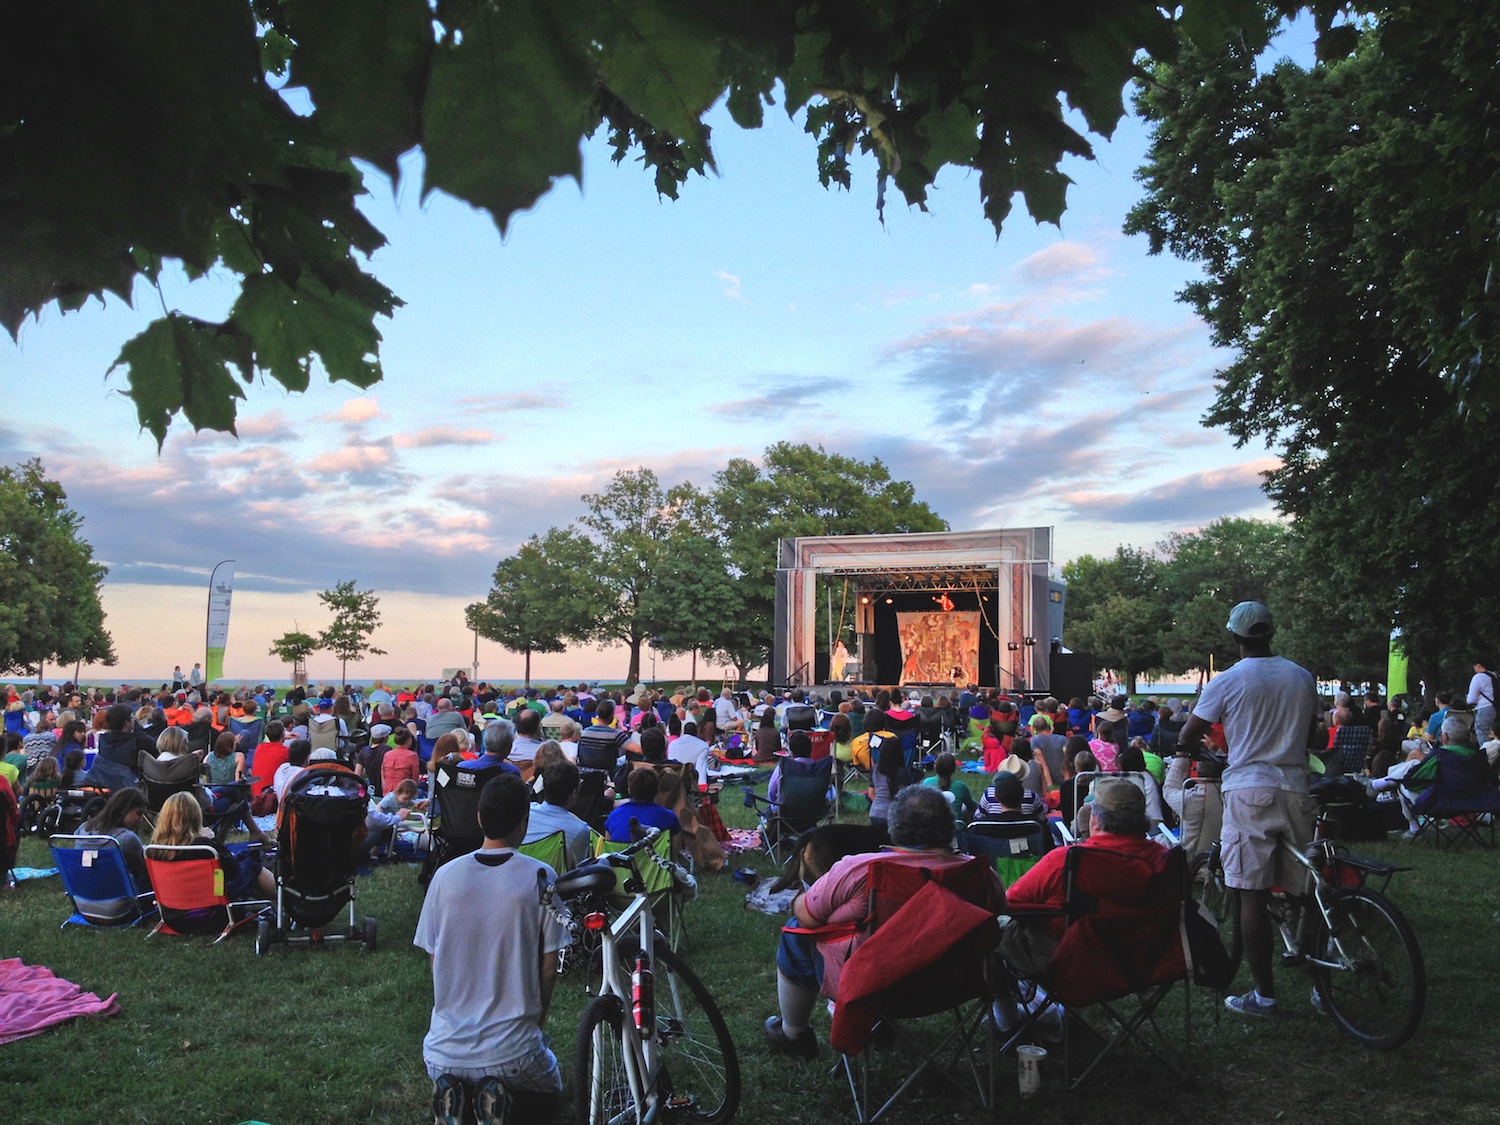 Chicago Shakespeare in the Parks, free 75-minute family-friendly production of Twelfth Night to neighborhood parks throughout the city. Part of Shakespeare 400 Chicago, July 14–August 14, 2016. (Pictured: Loyola Park). Photo by Julie Stanton.